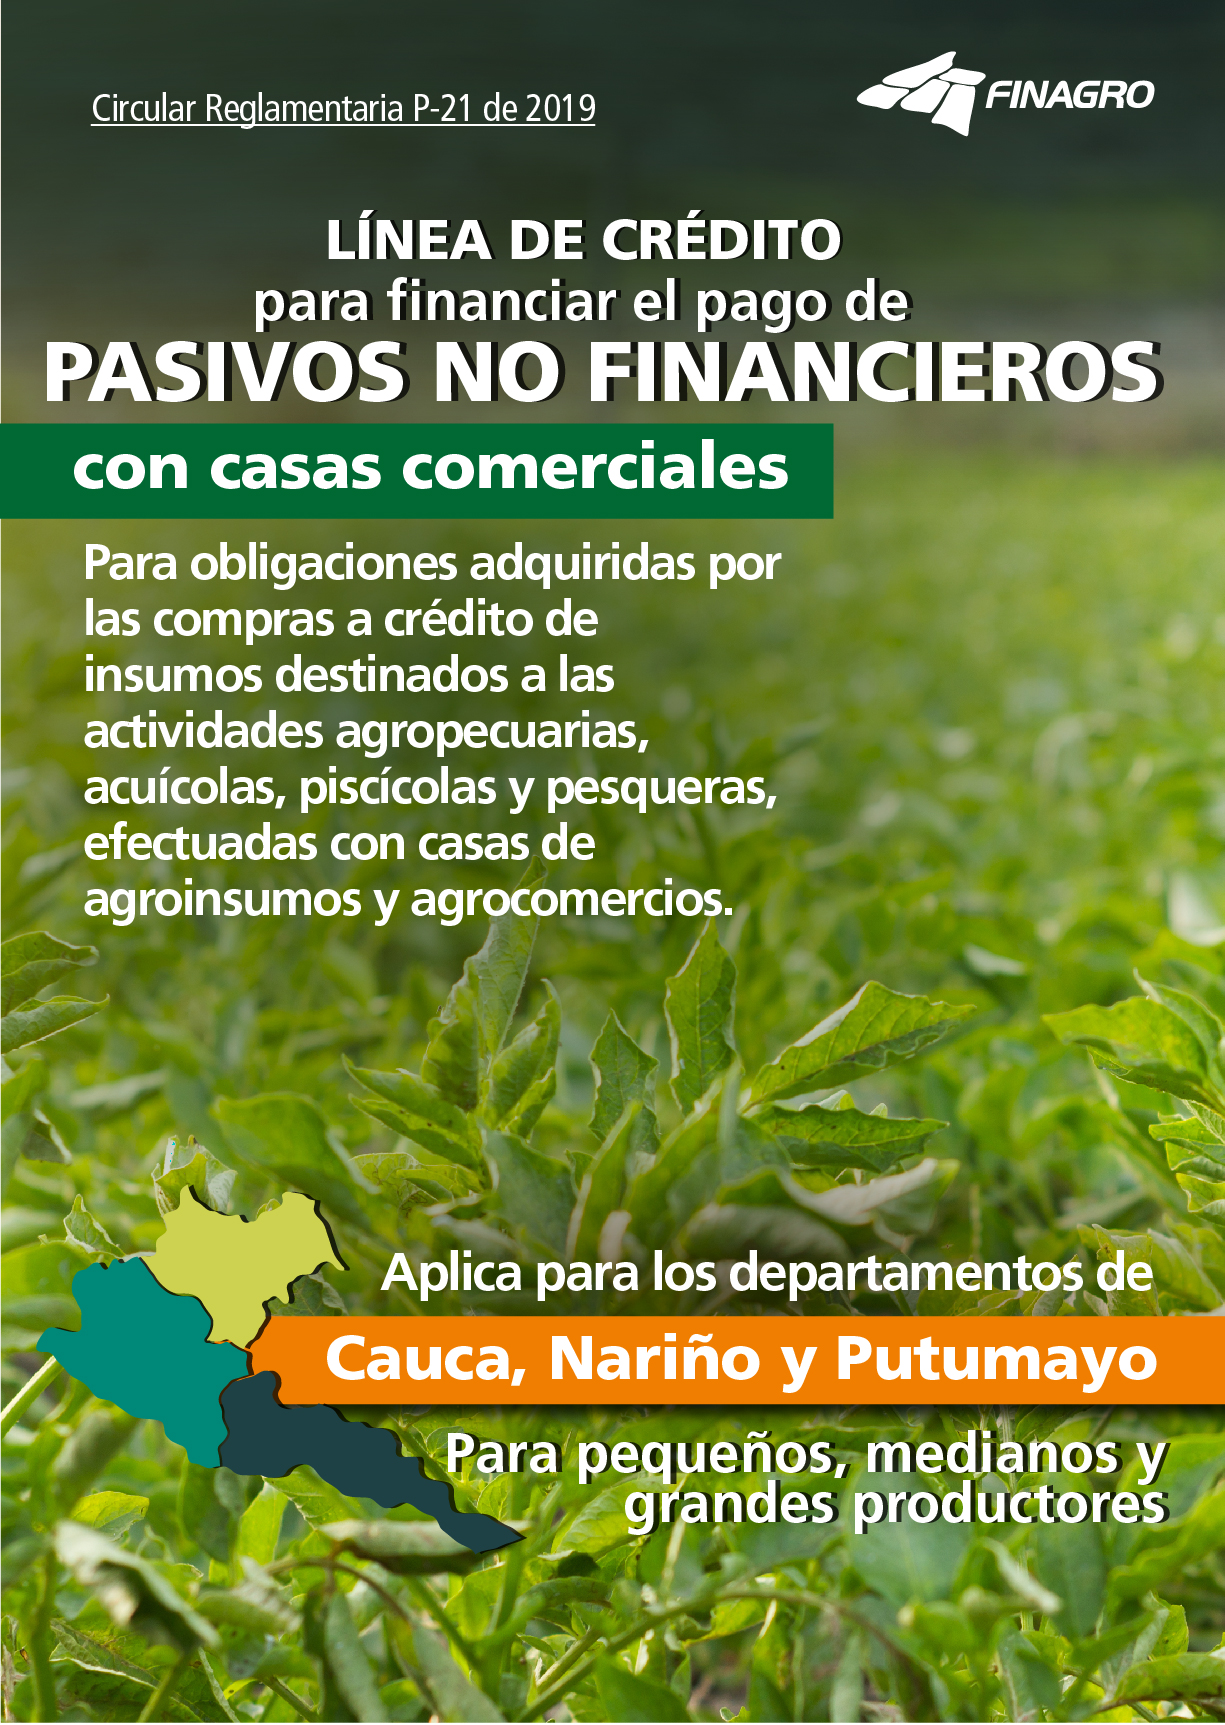 Pasivos no financieros